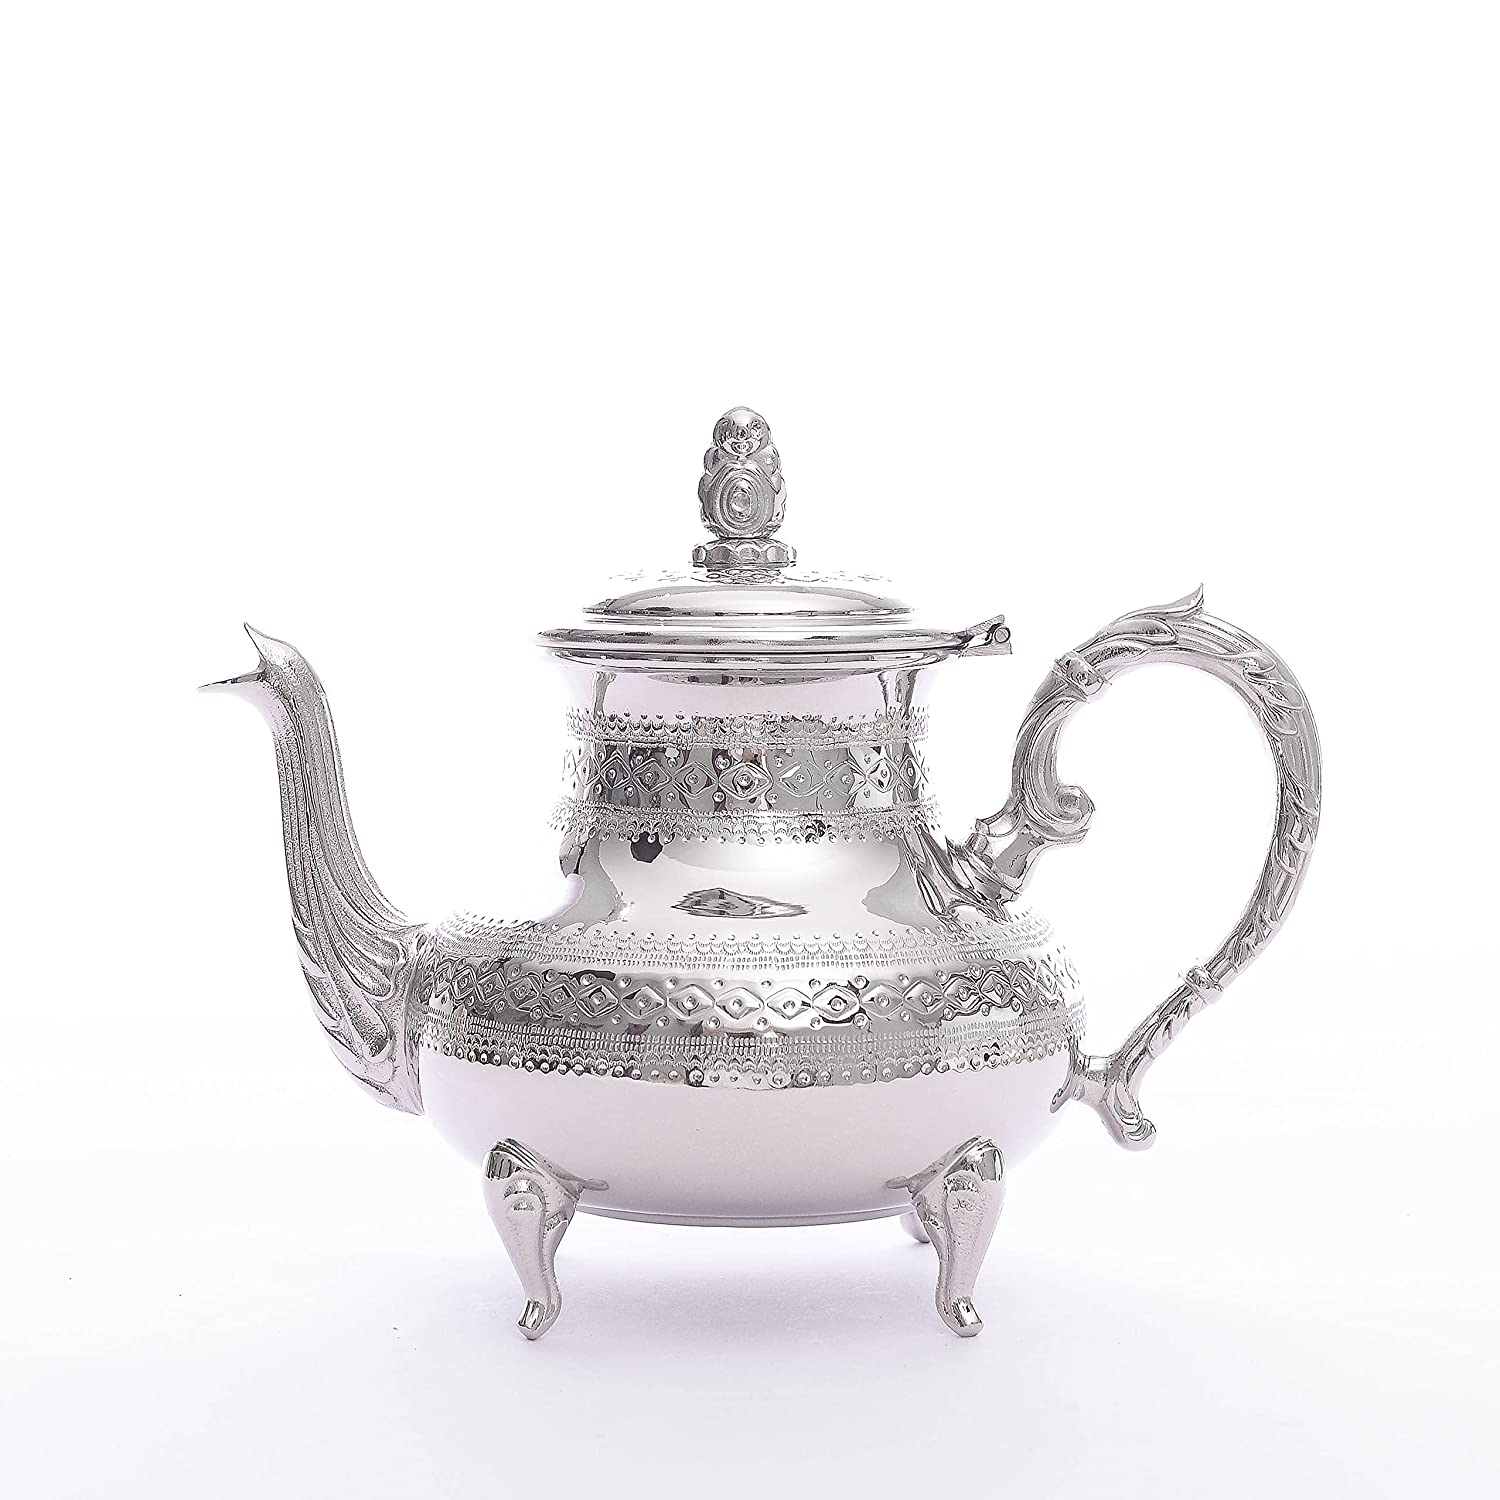 Popular Moroccan handmade brass teapot luxurious tea silver handcrafted low-pricing